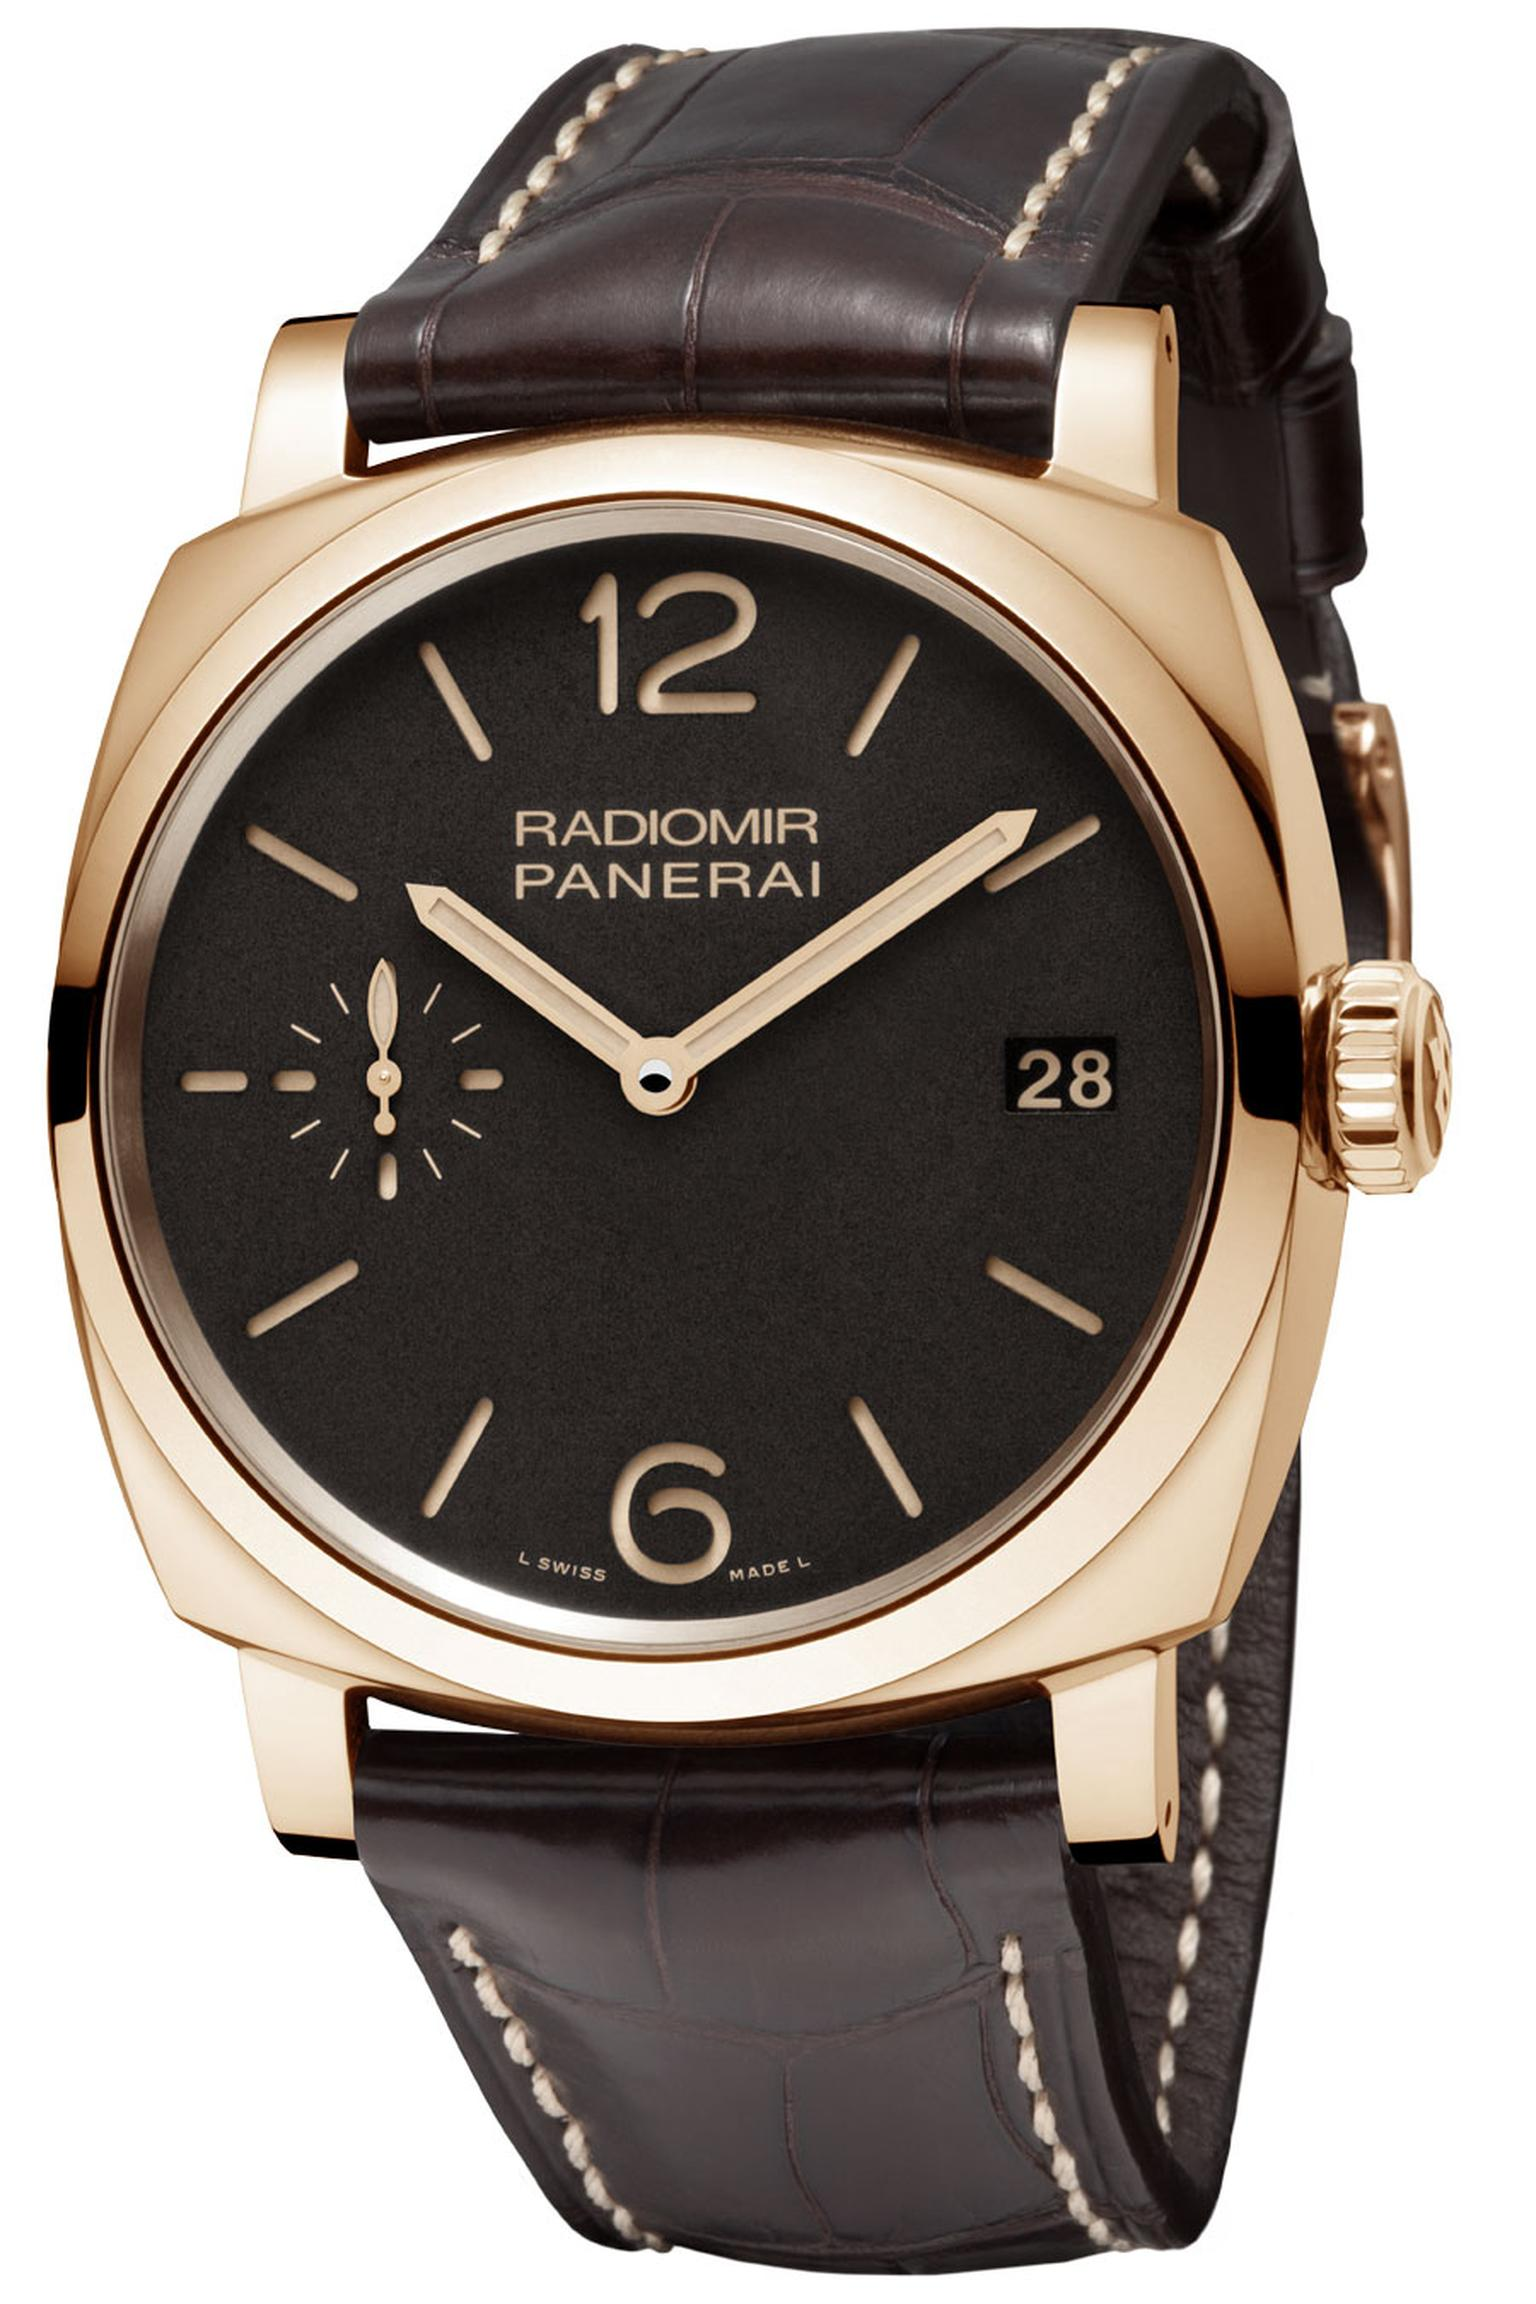 Officine-Panerai-PAM00515-press.jpg